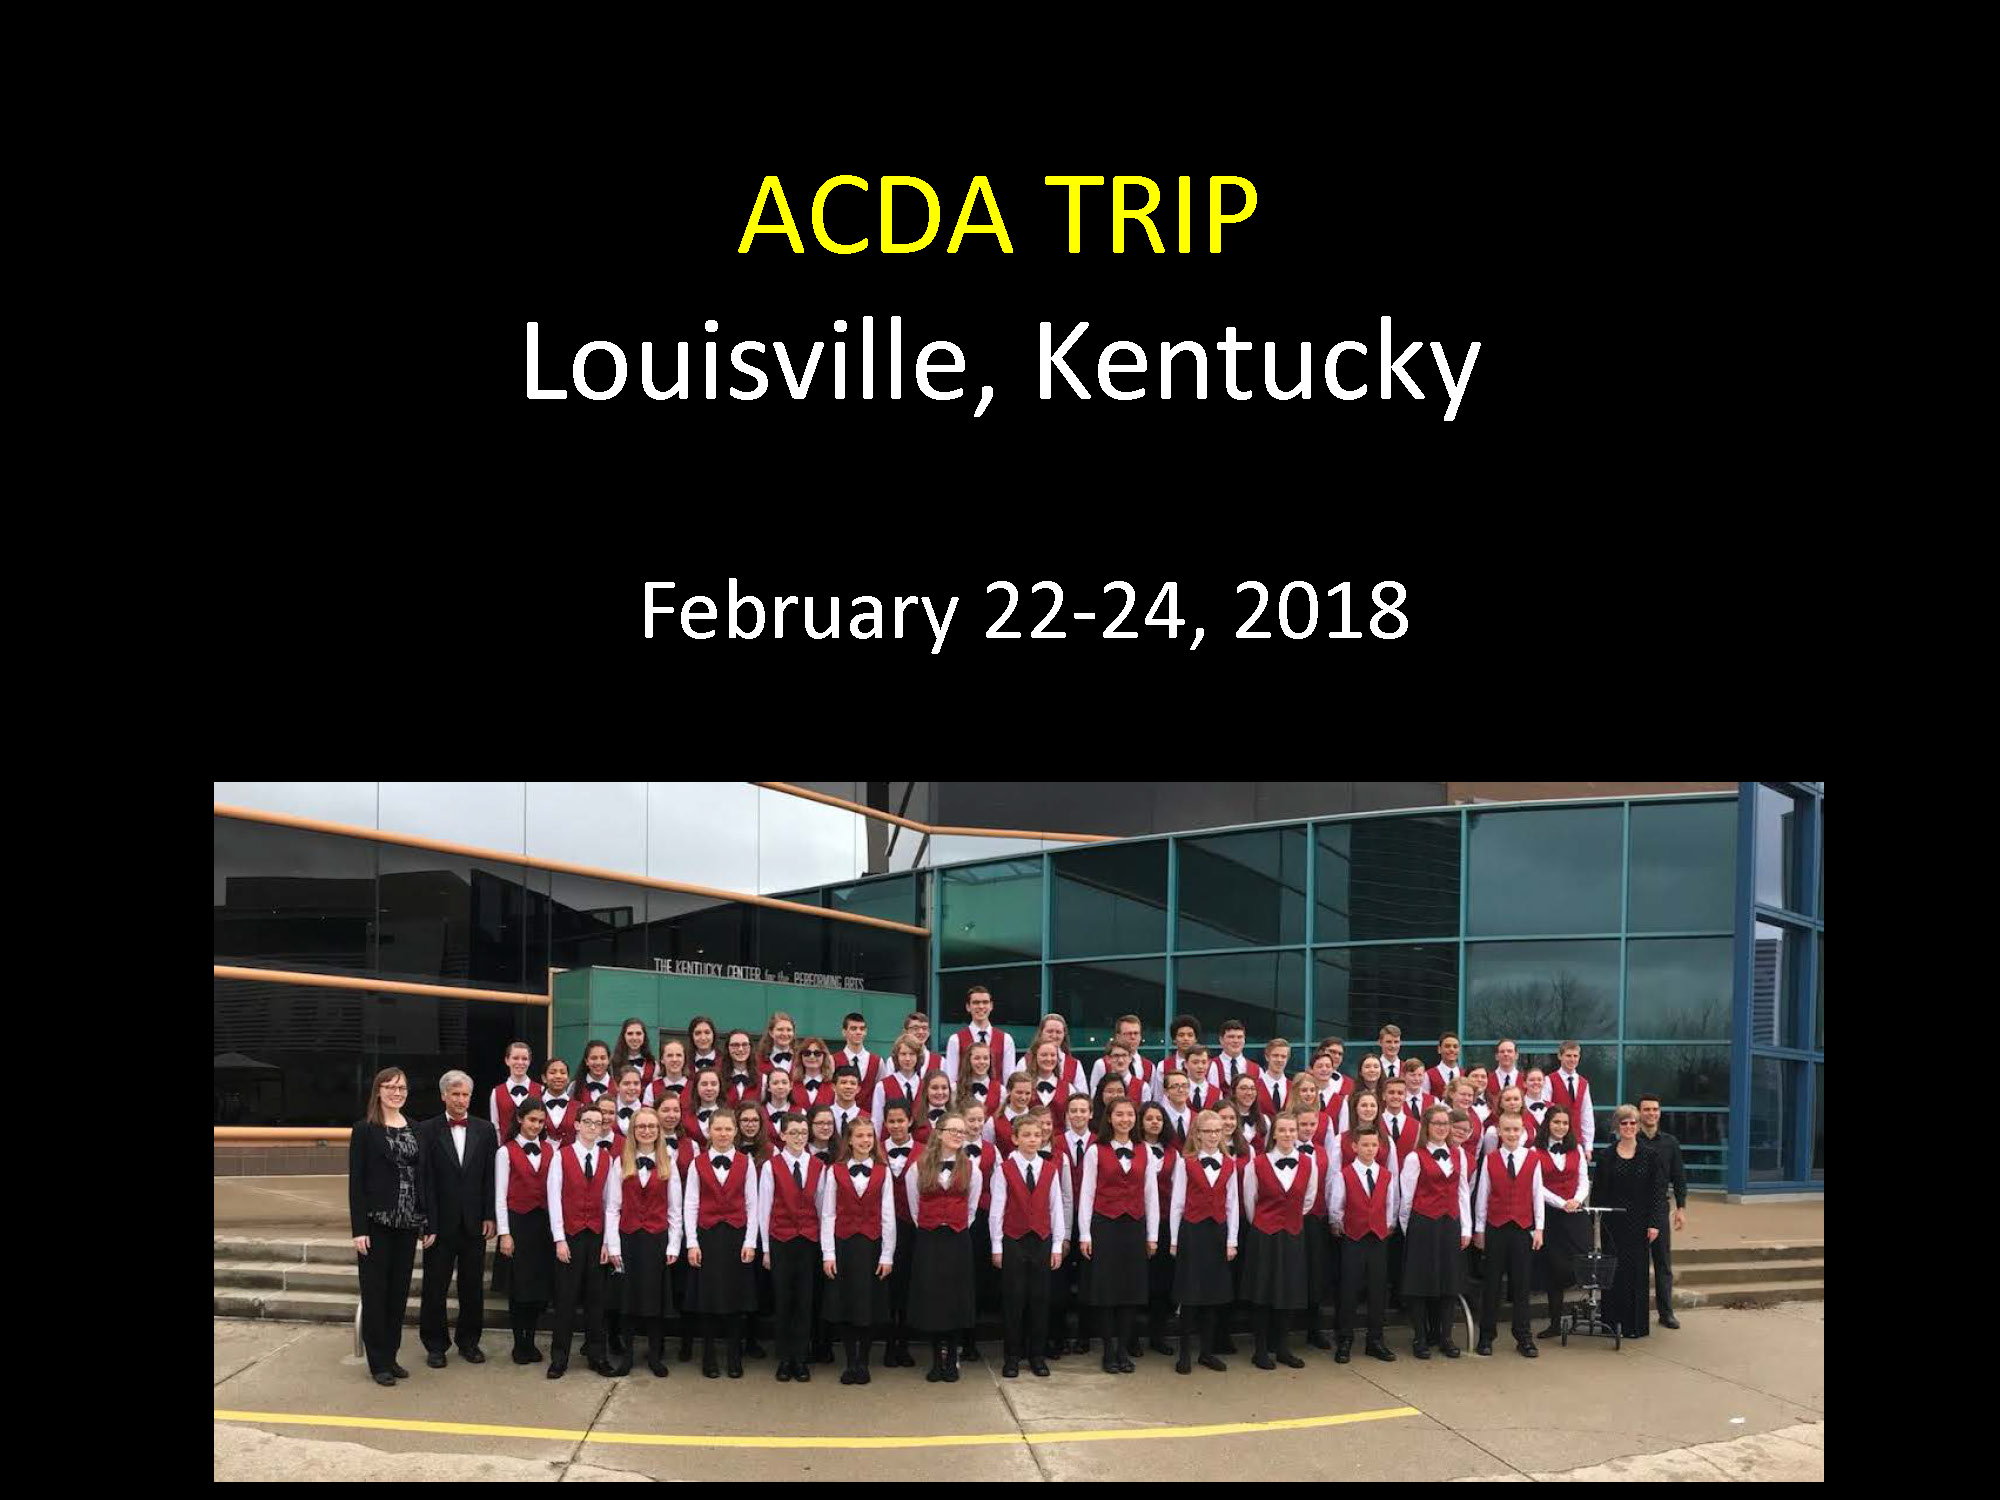 ACDA Louisville Pictures_Page_001.jpg